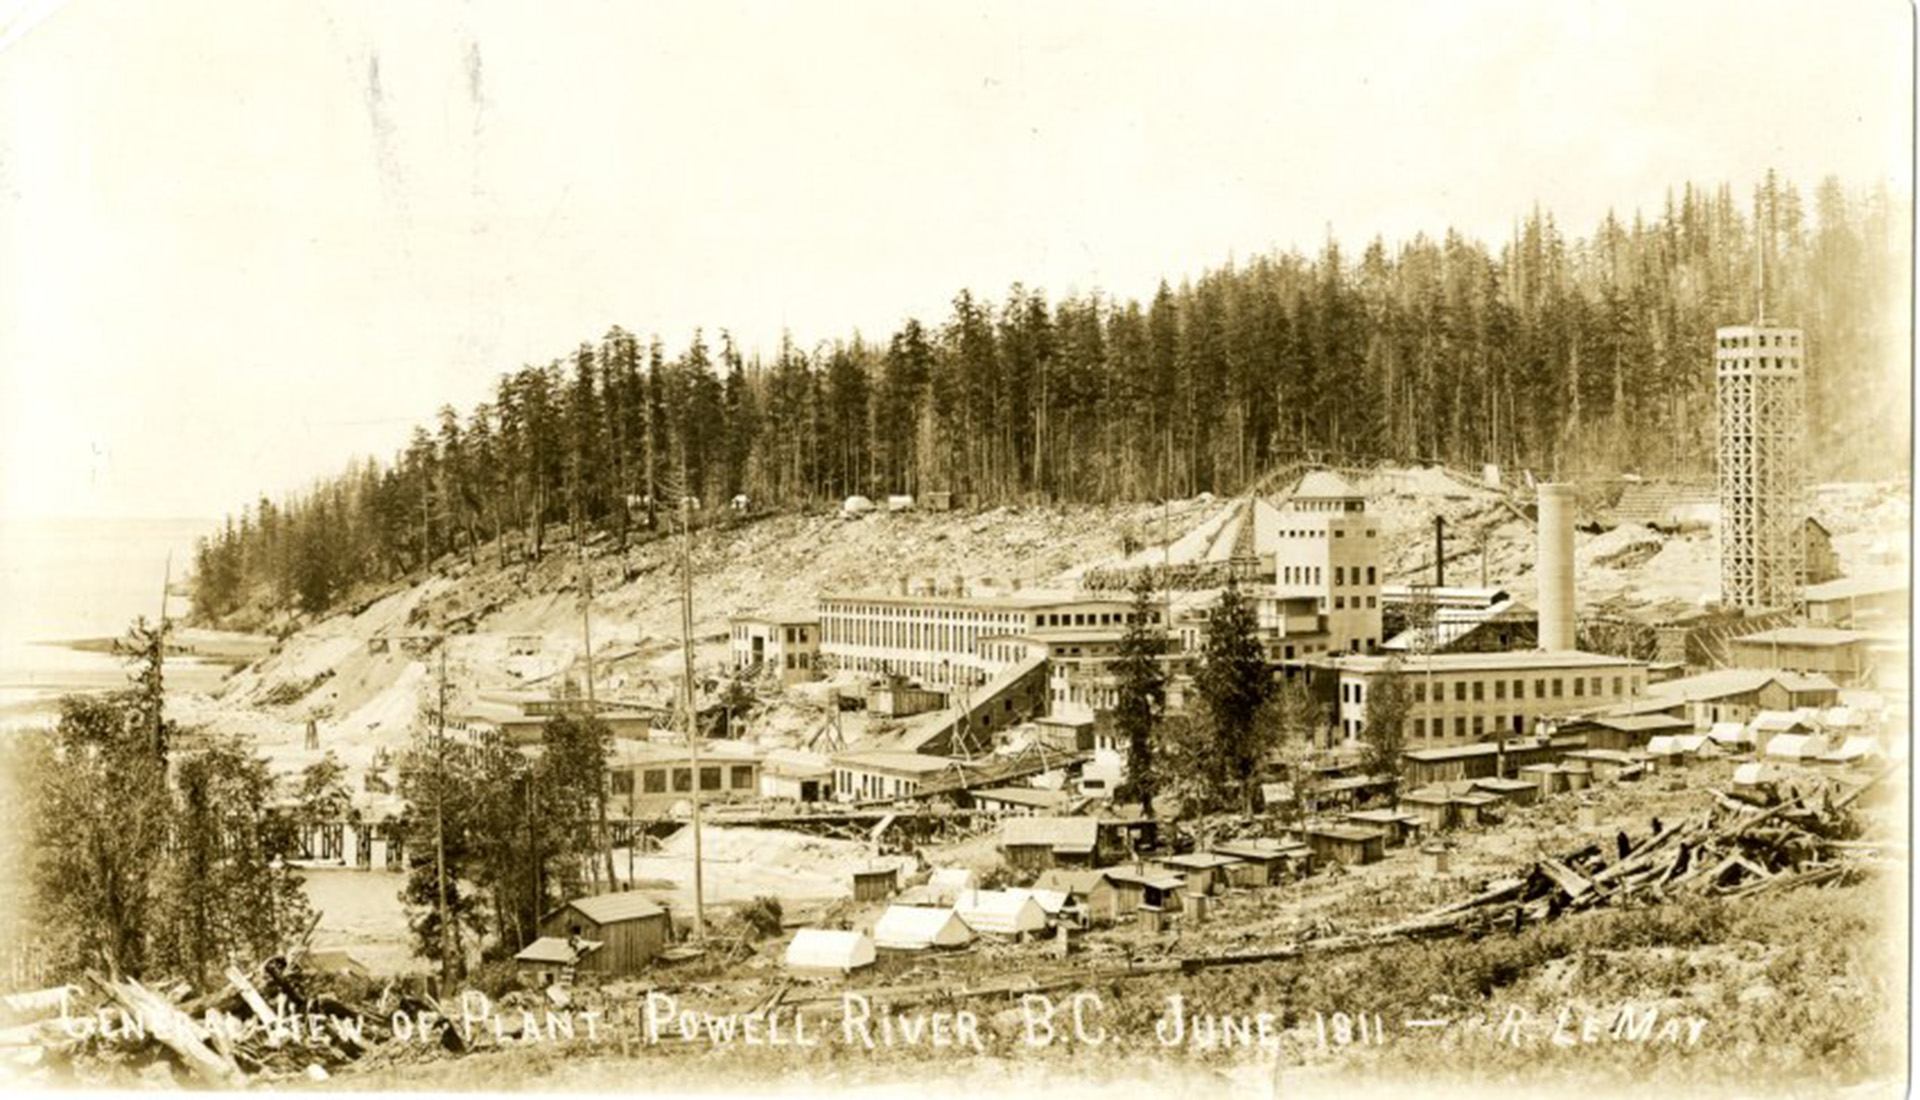 The Powell River Company Mill in 1911 with bunkhouses in foreground.